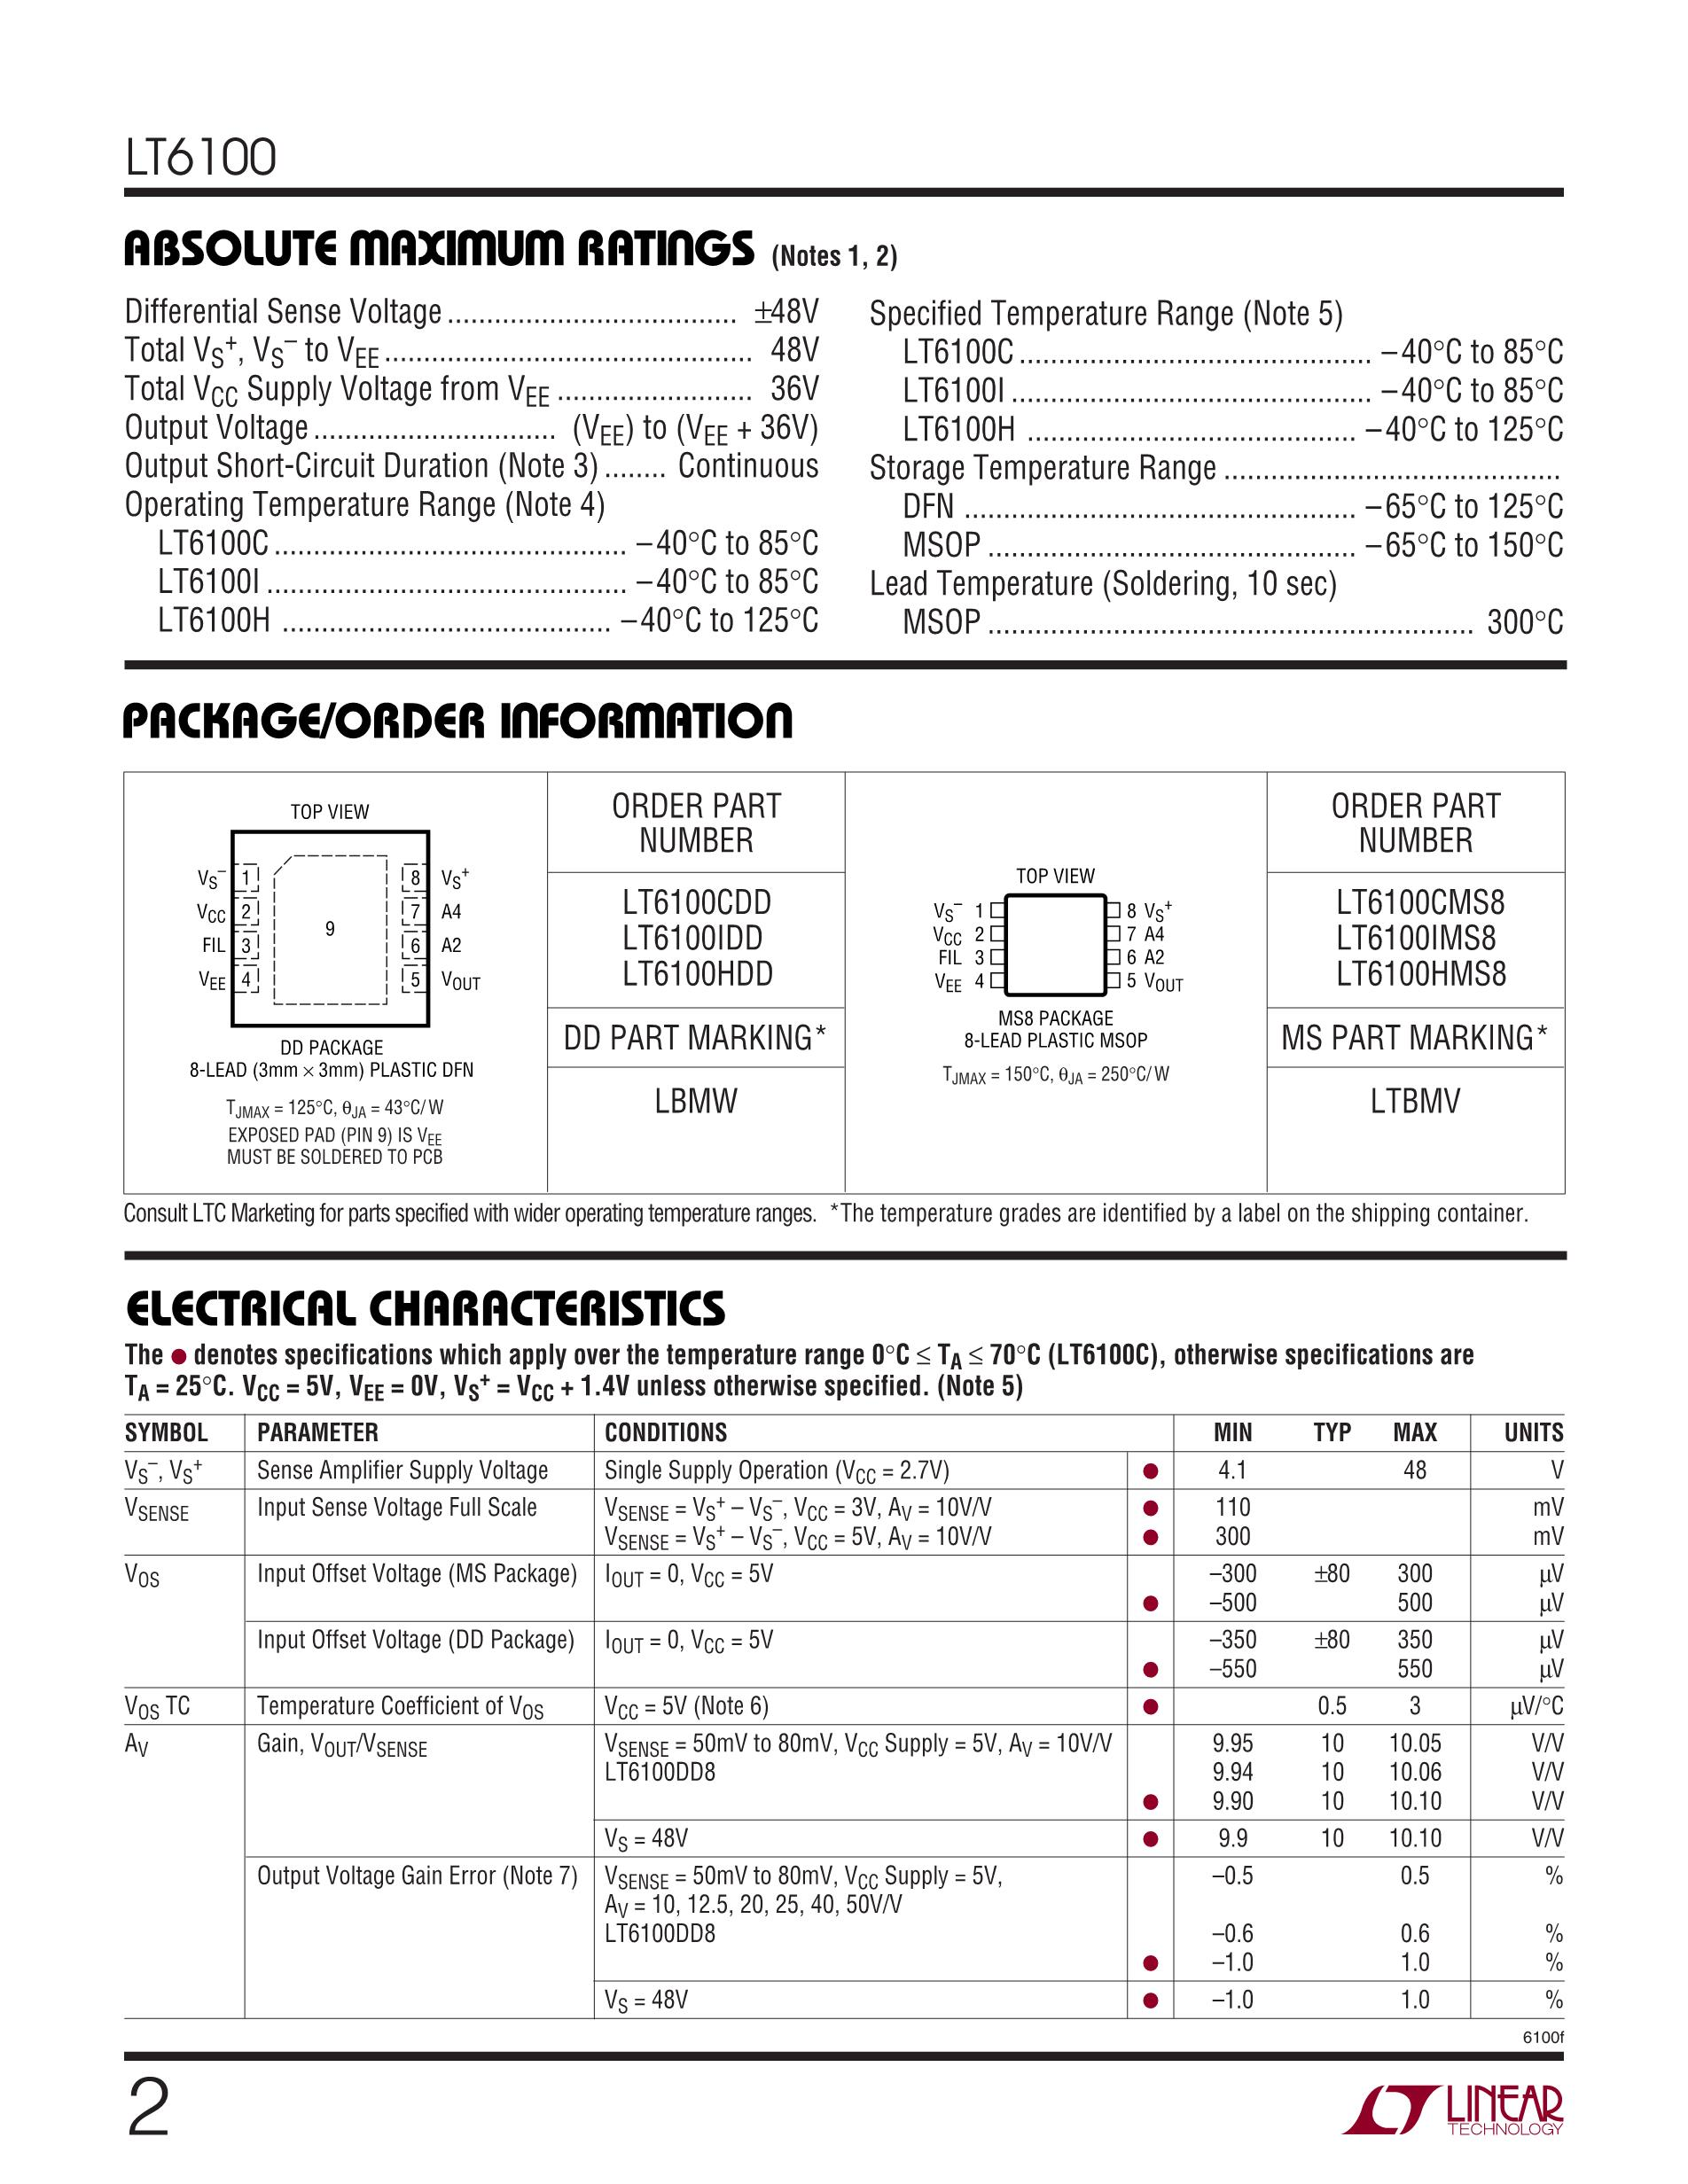 LT6108IMS8-2#PBF's pdf picture 2